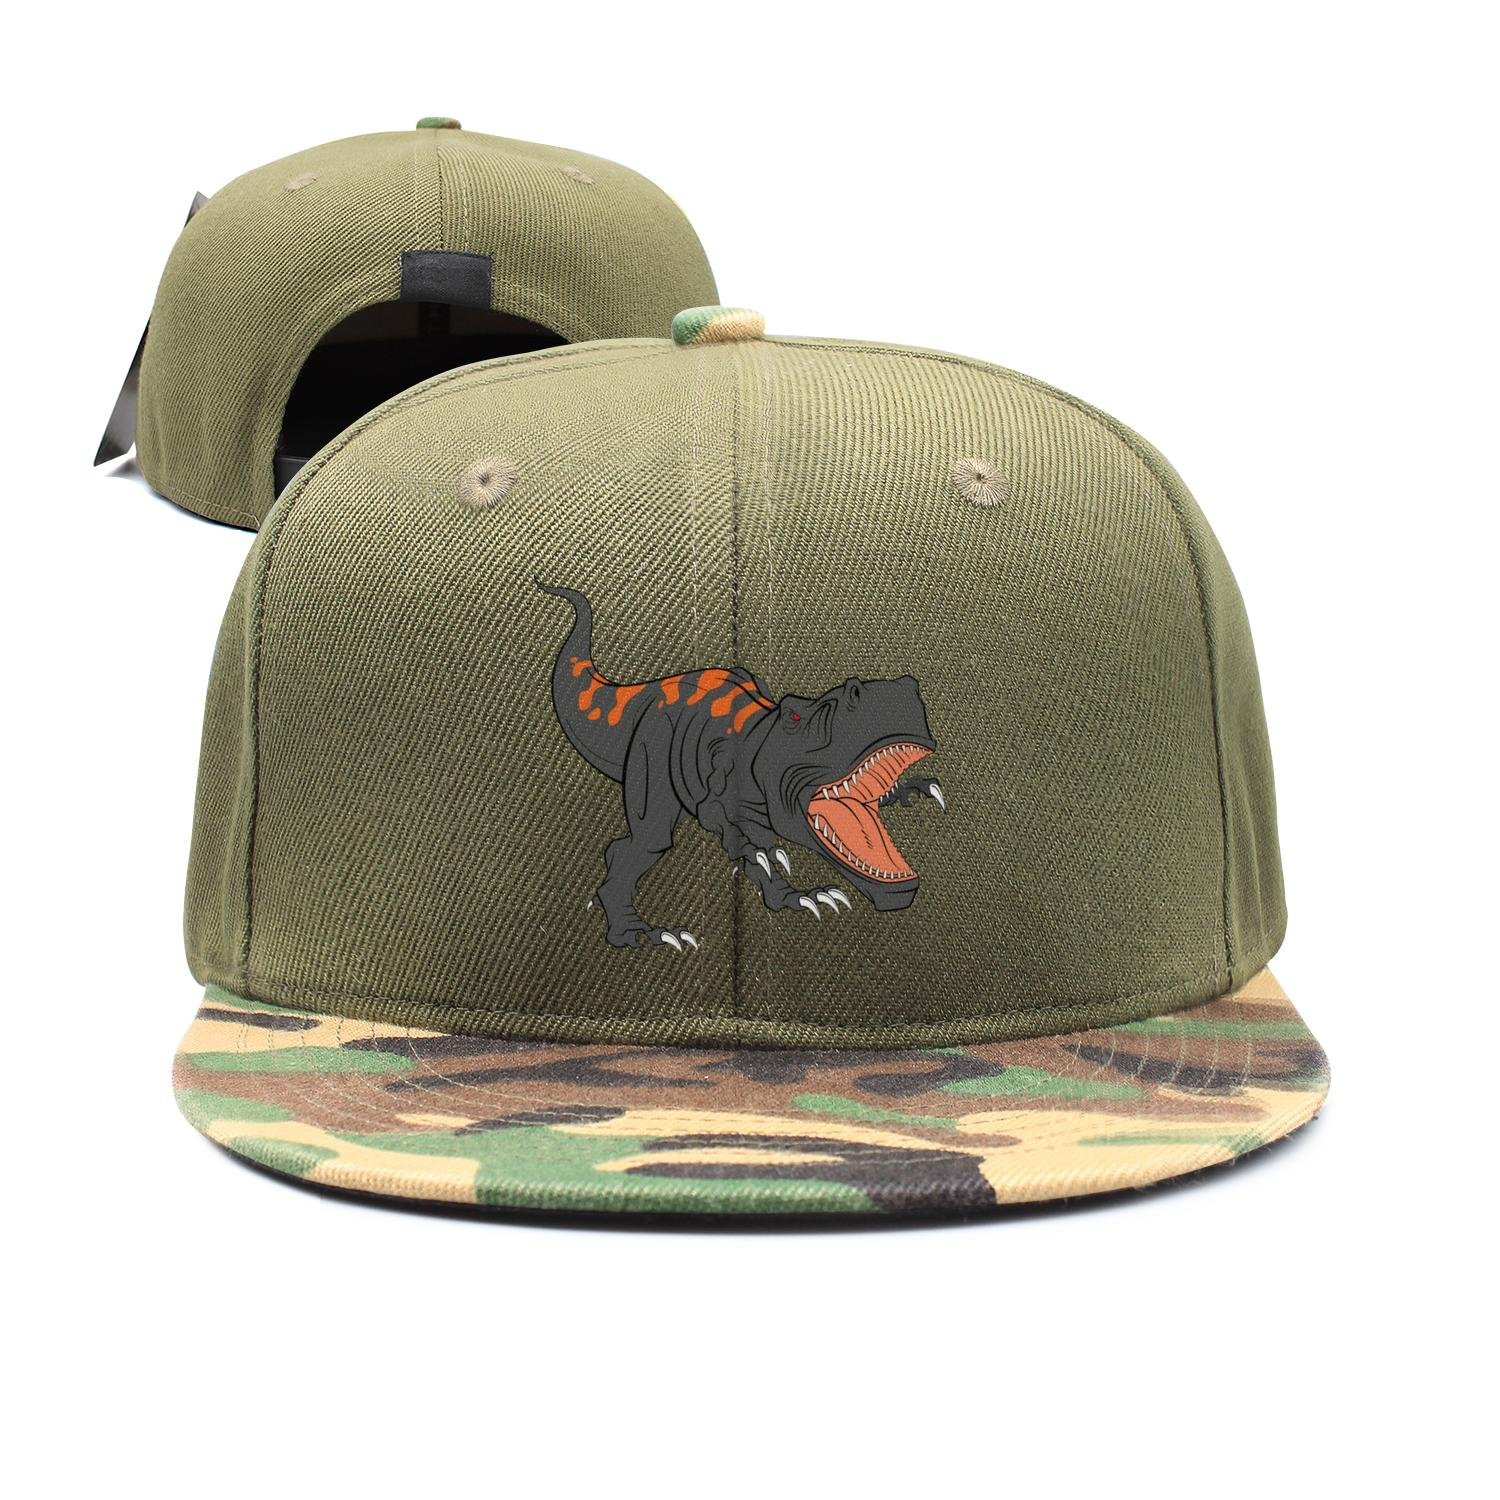 Dynamic Culture And Sporting The Fierce Dinosaur Children's Sun Protection,Casual,Summer Baseball Adjustable Mesh Hat Cap